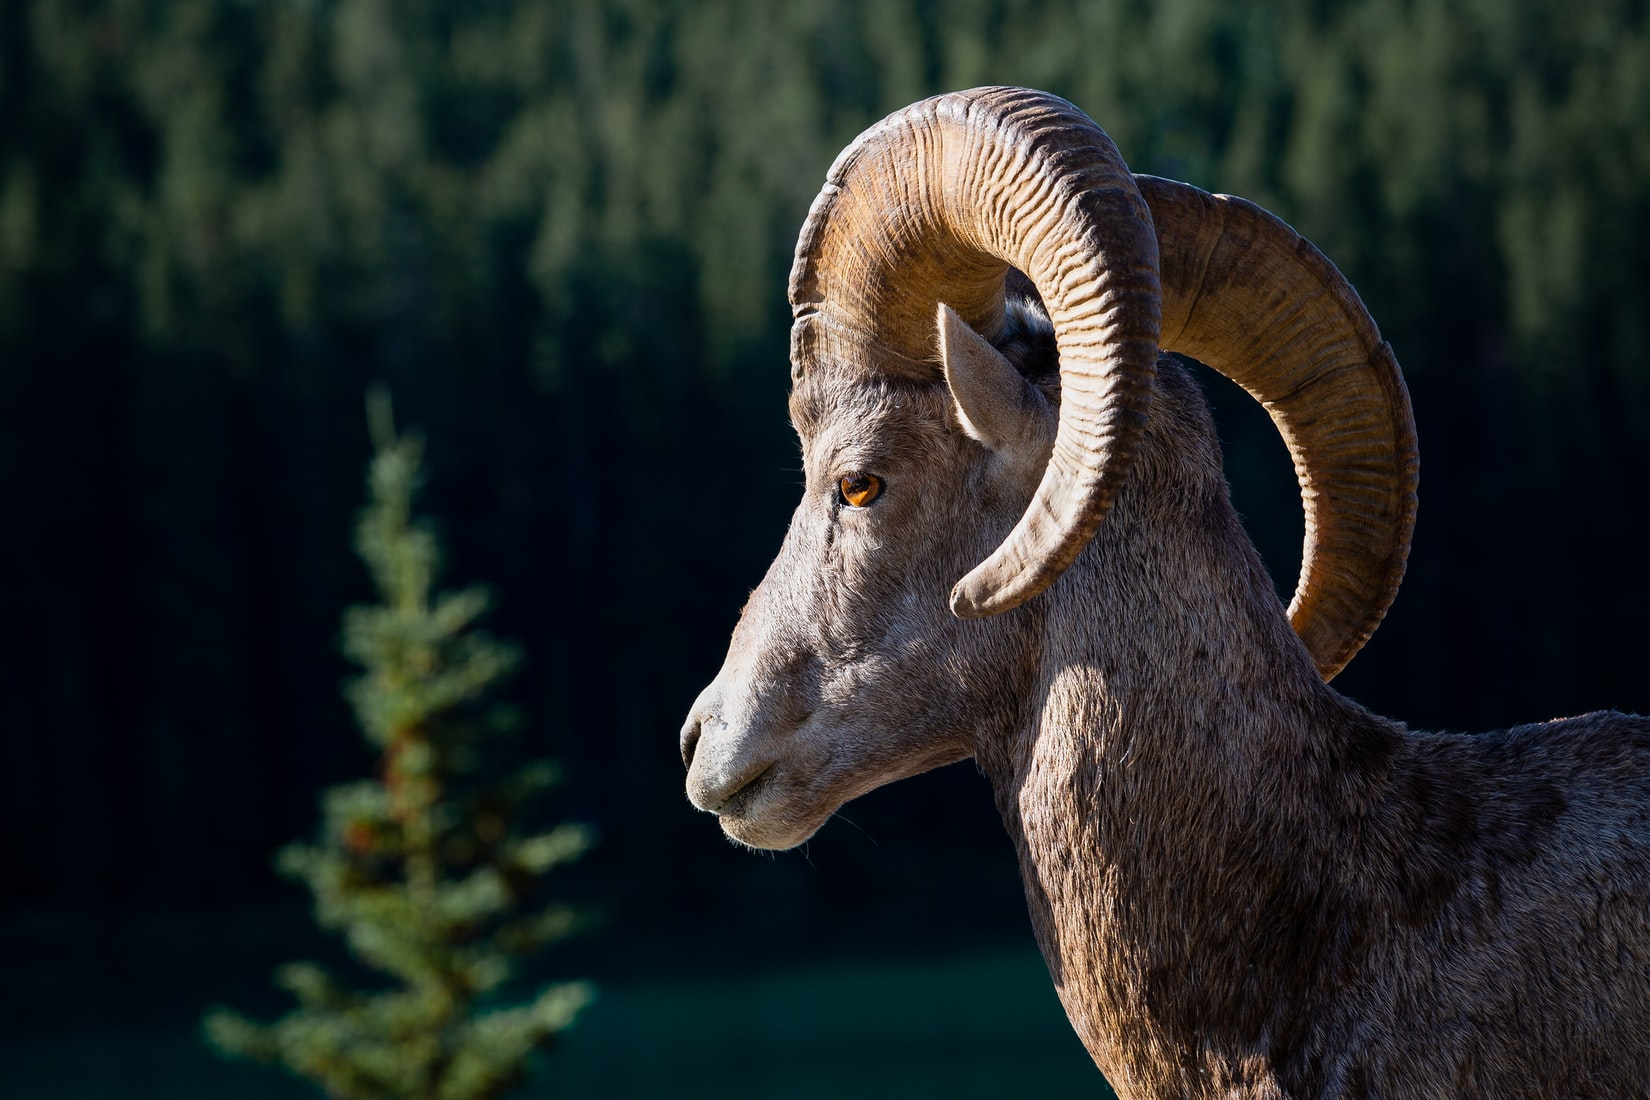 Nature Up Close: The Bighorn Sheep of Yellowstone